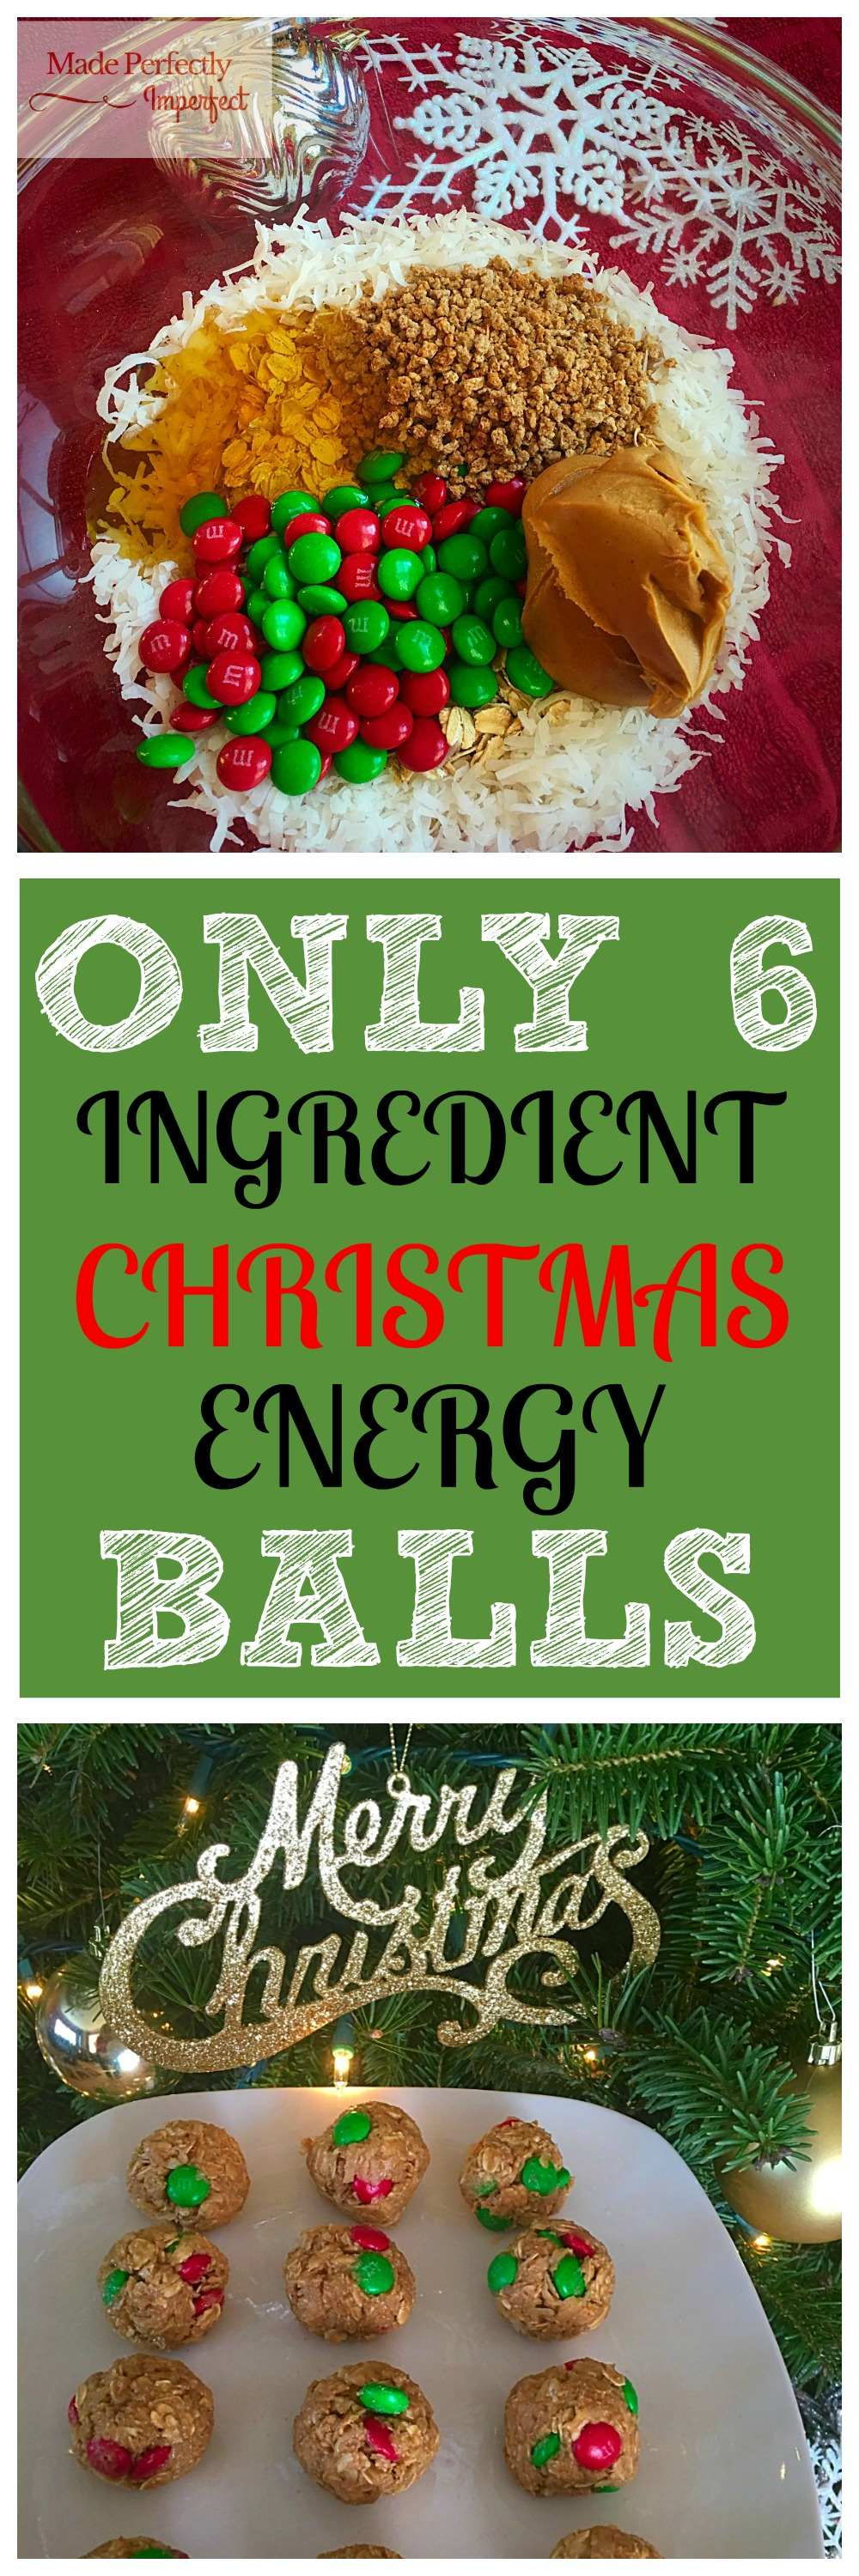 Only 6 Ingredient Christmas Energy Balls So good! Especially when you're trying to eat healthy during the holidays.